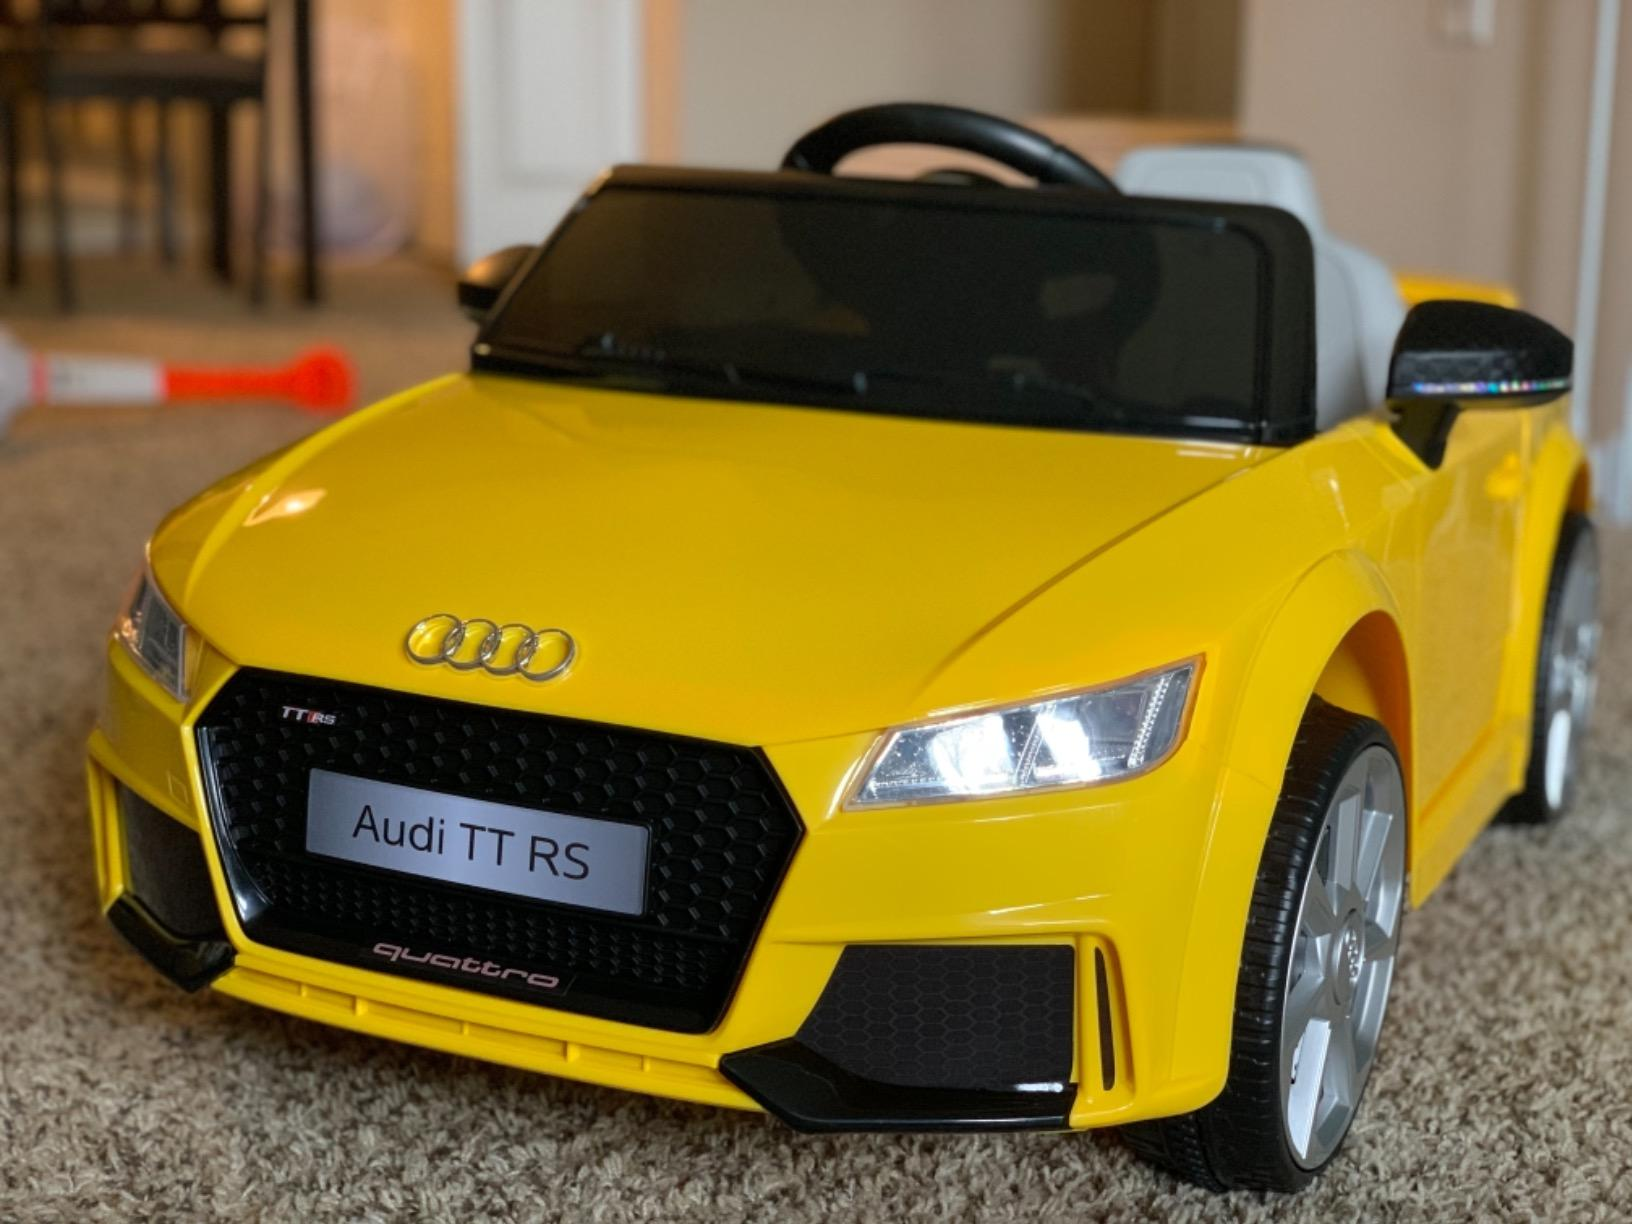 Audi TT RS Ride On Car For Kids With Remote Control, Yellow photo review